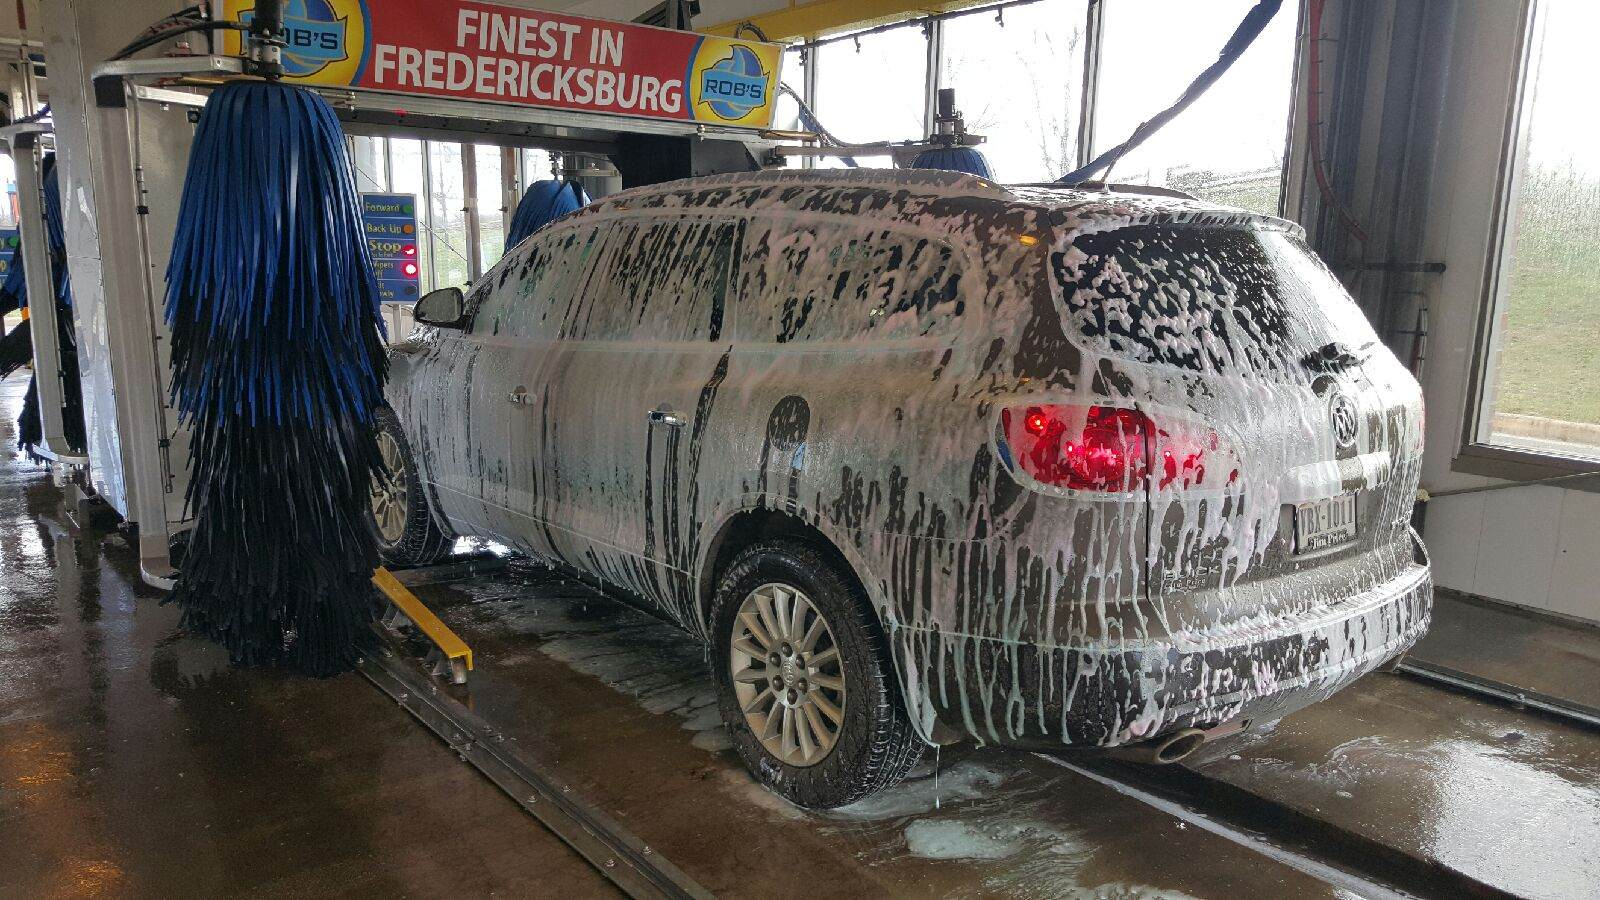 247 automated car wash 247 self service car wash robs car eco friendly solutioingenieria Images